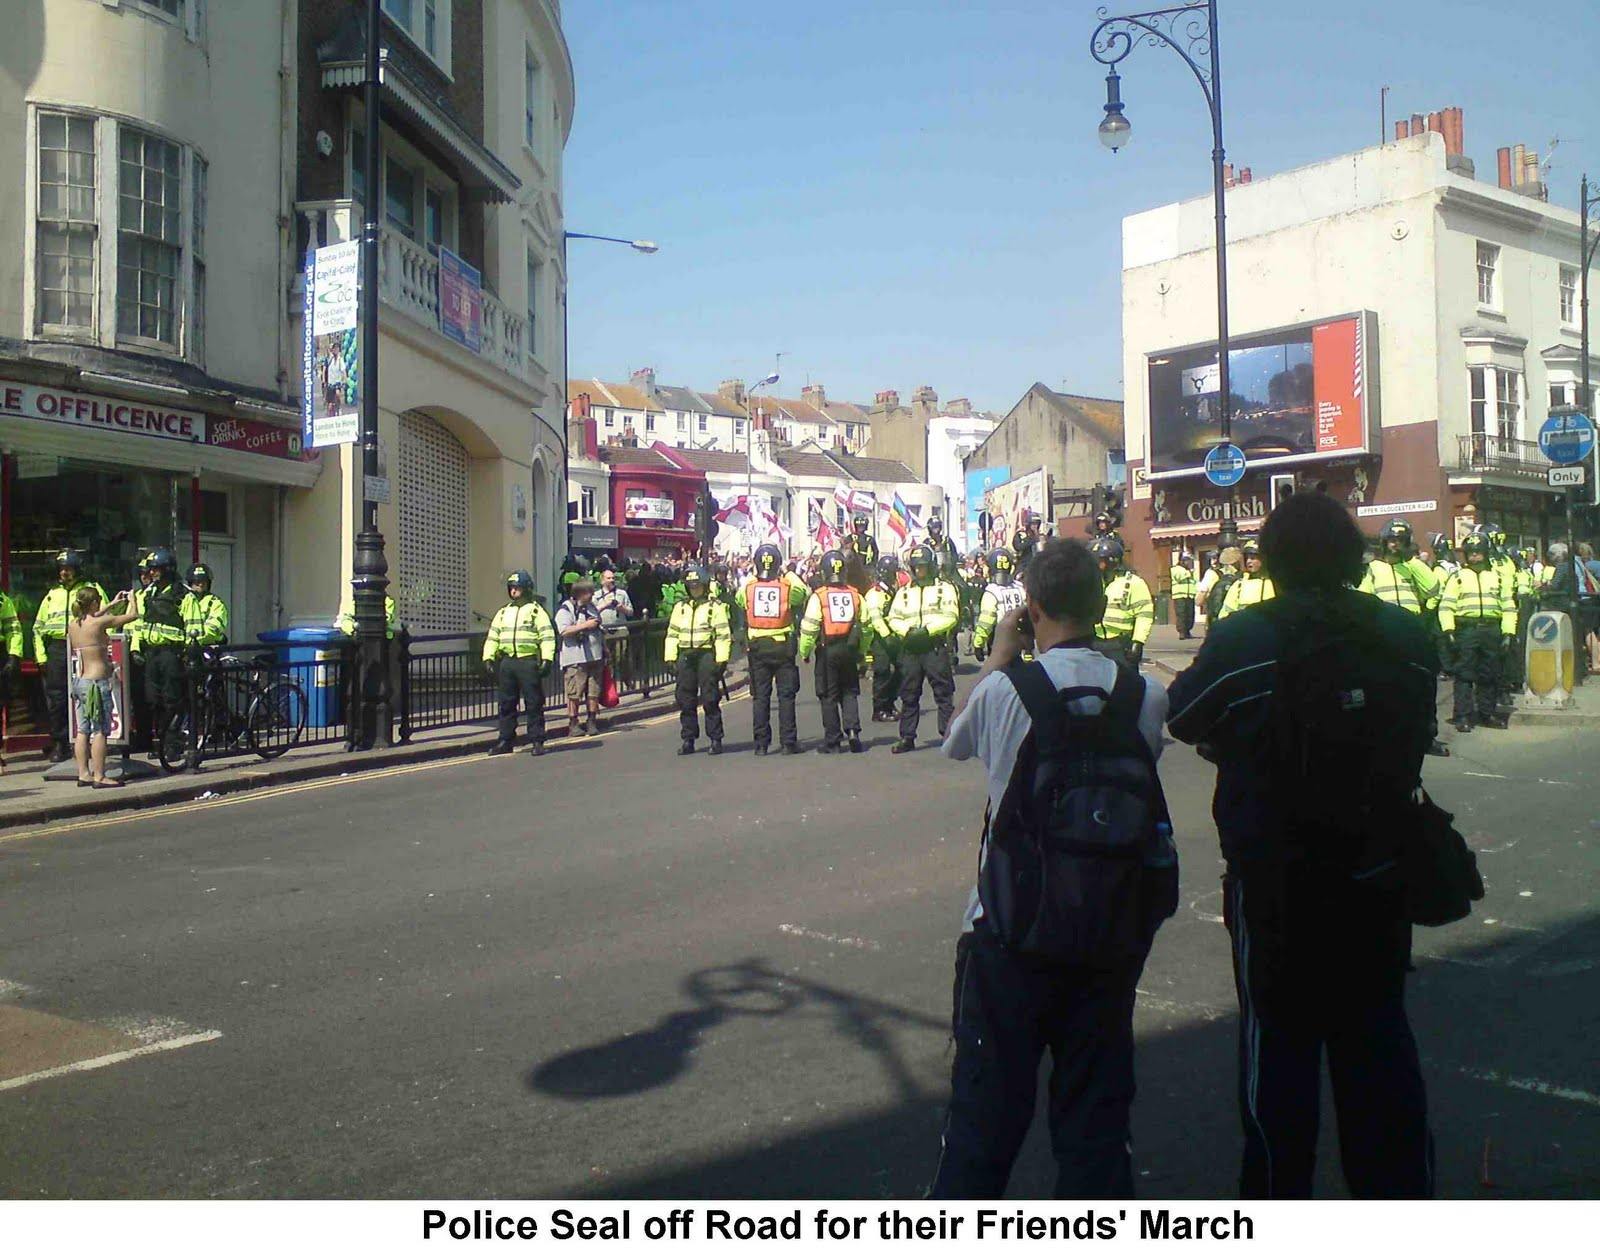 Tony Greenstein's Blog: Police Force Fascist March Through